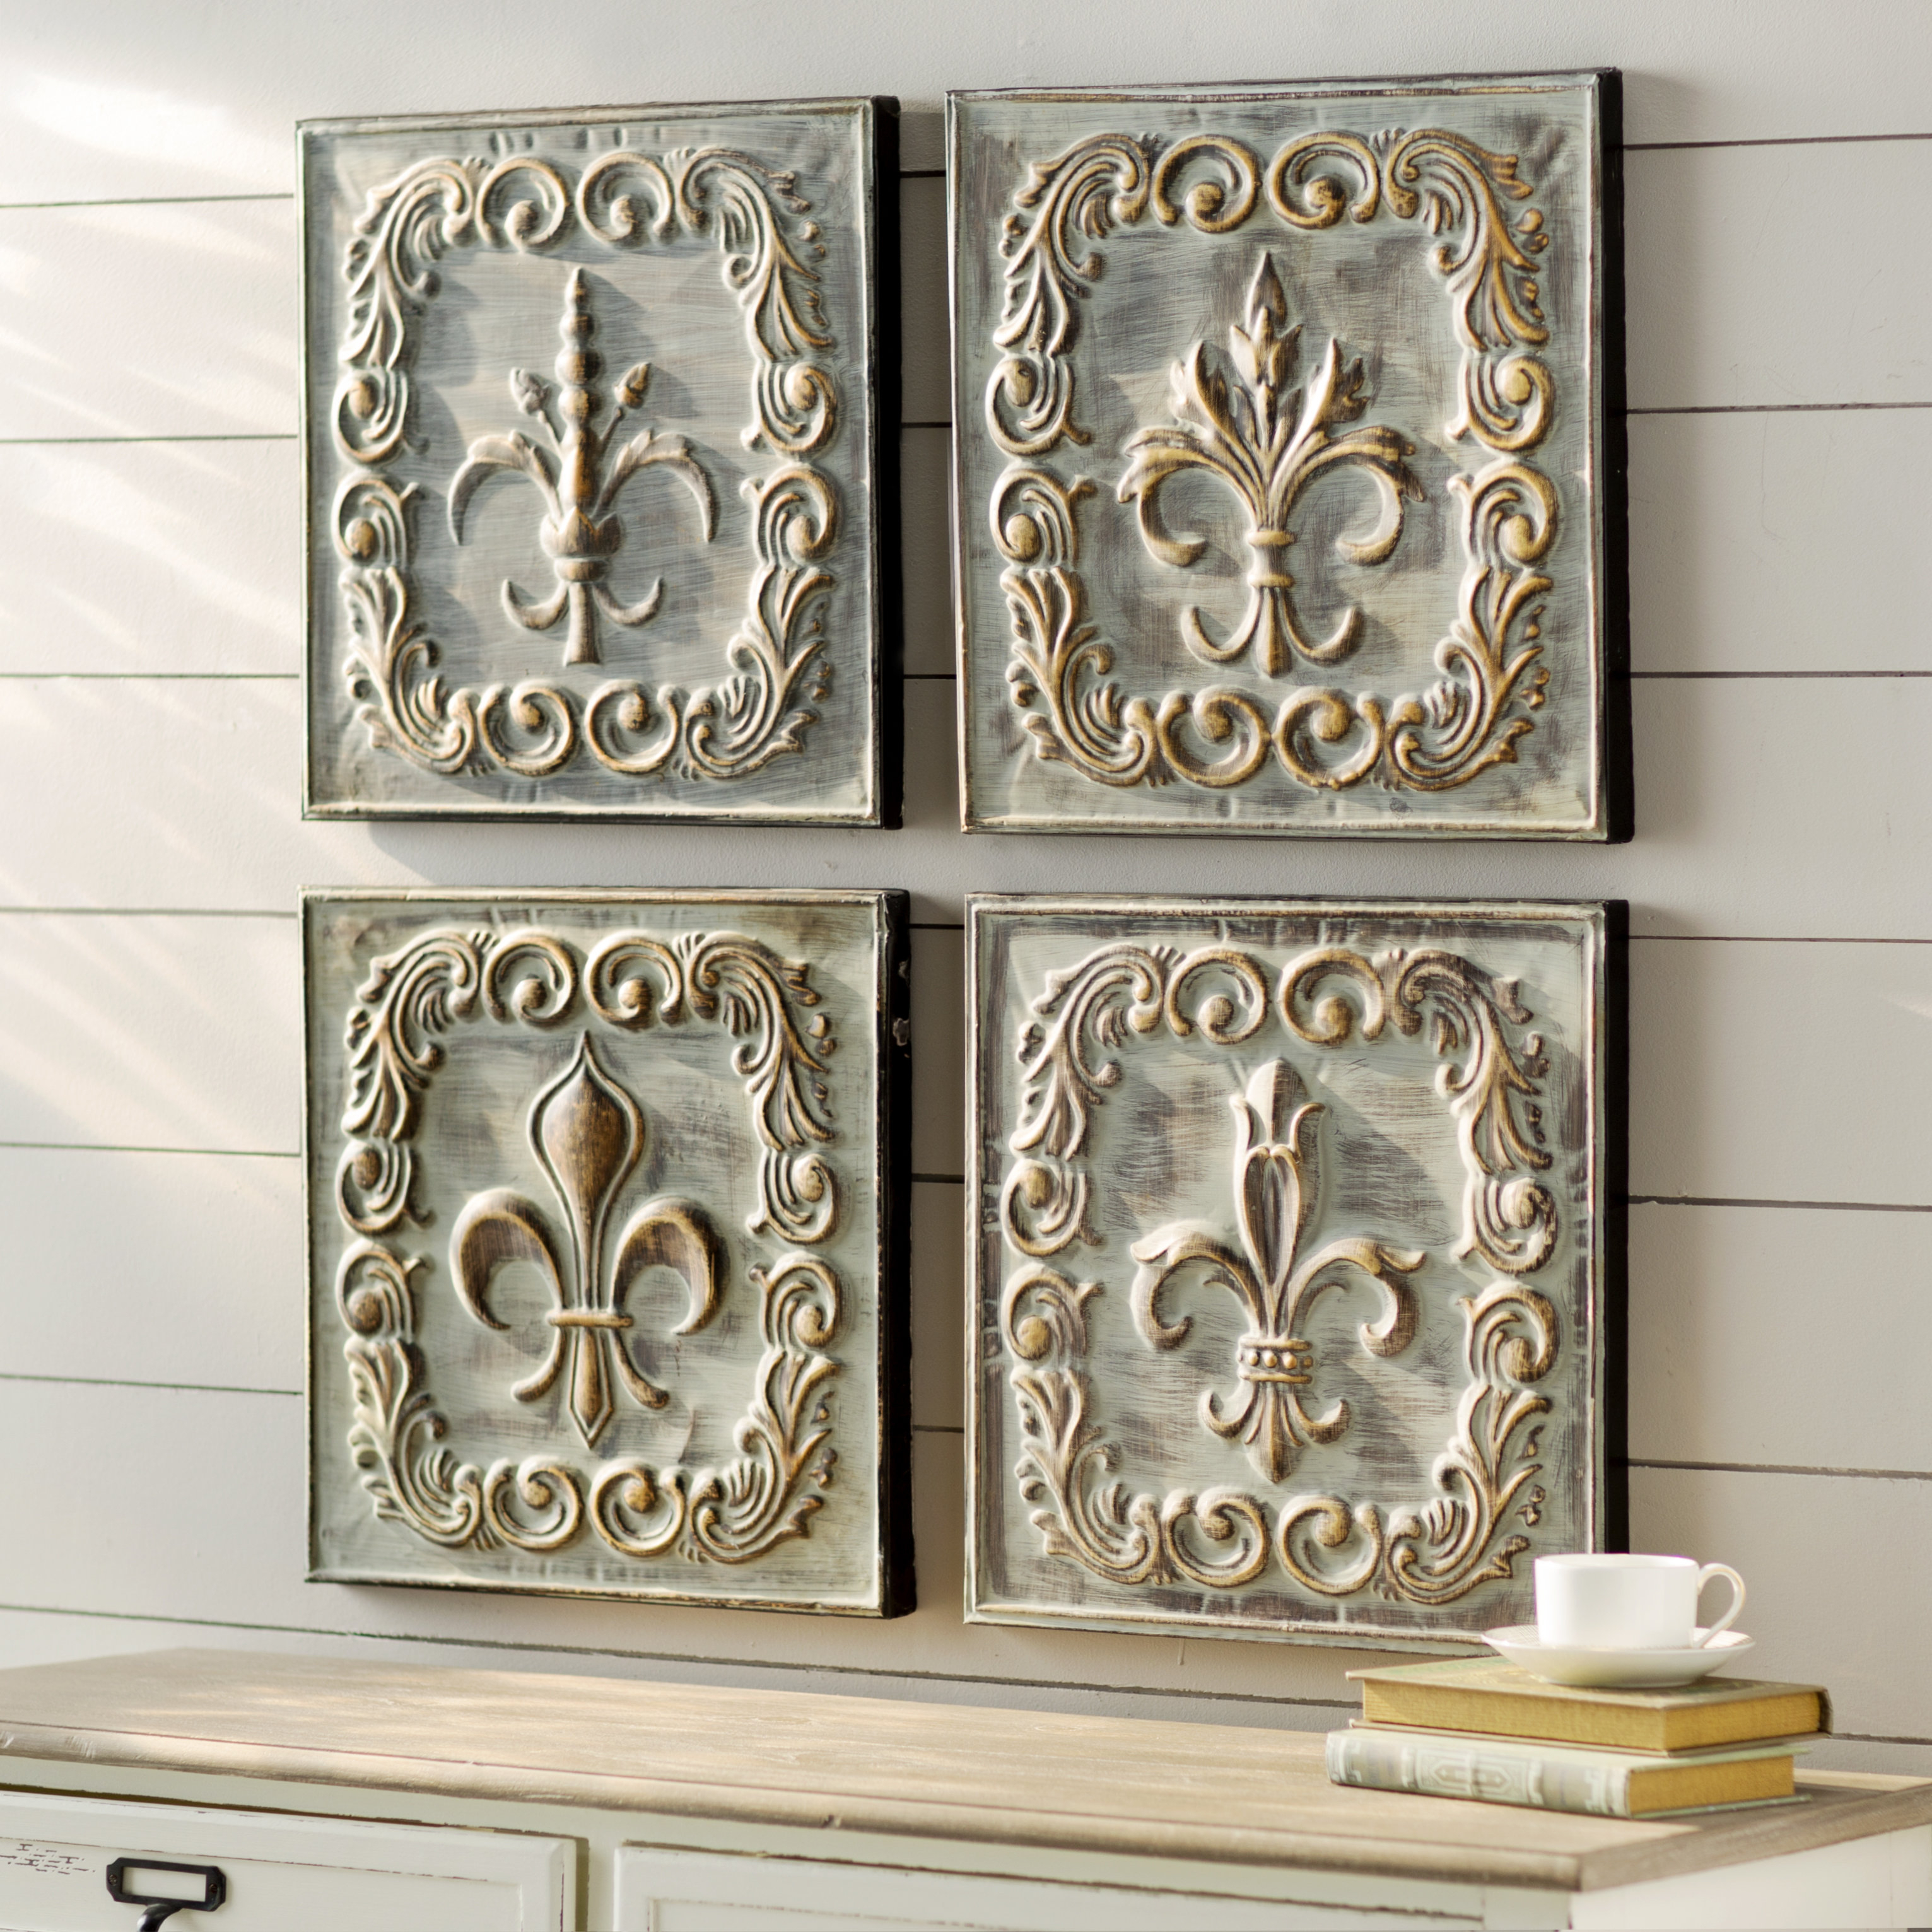 Fleur De Lis Metal Wall Art | Wayfair Within 4 Piece Metal Wall Plaque Decor Sets (View 8 of 30)